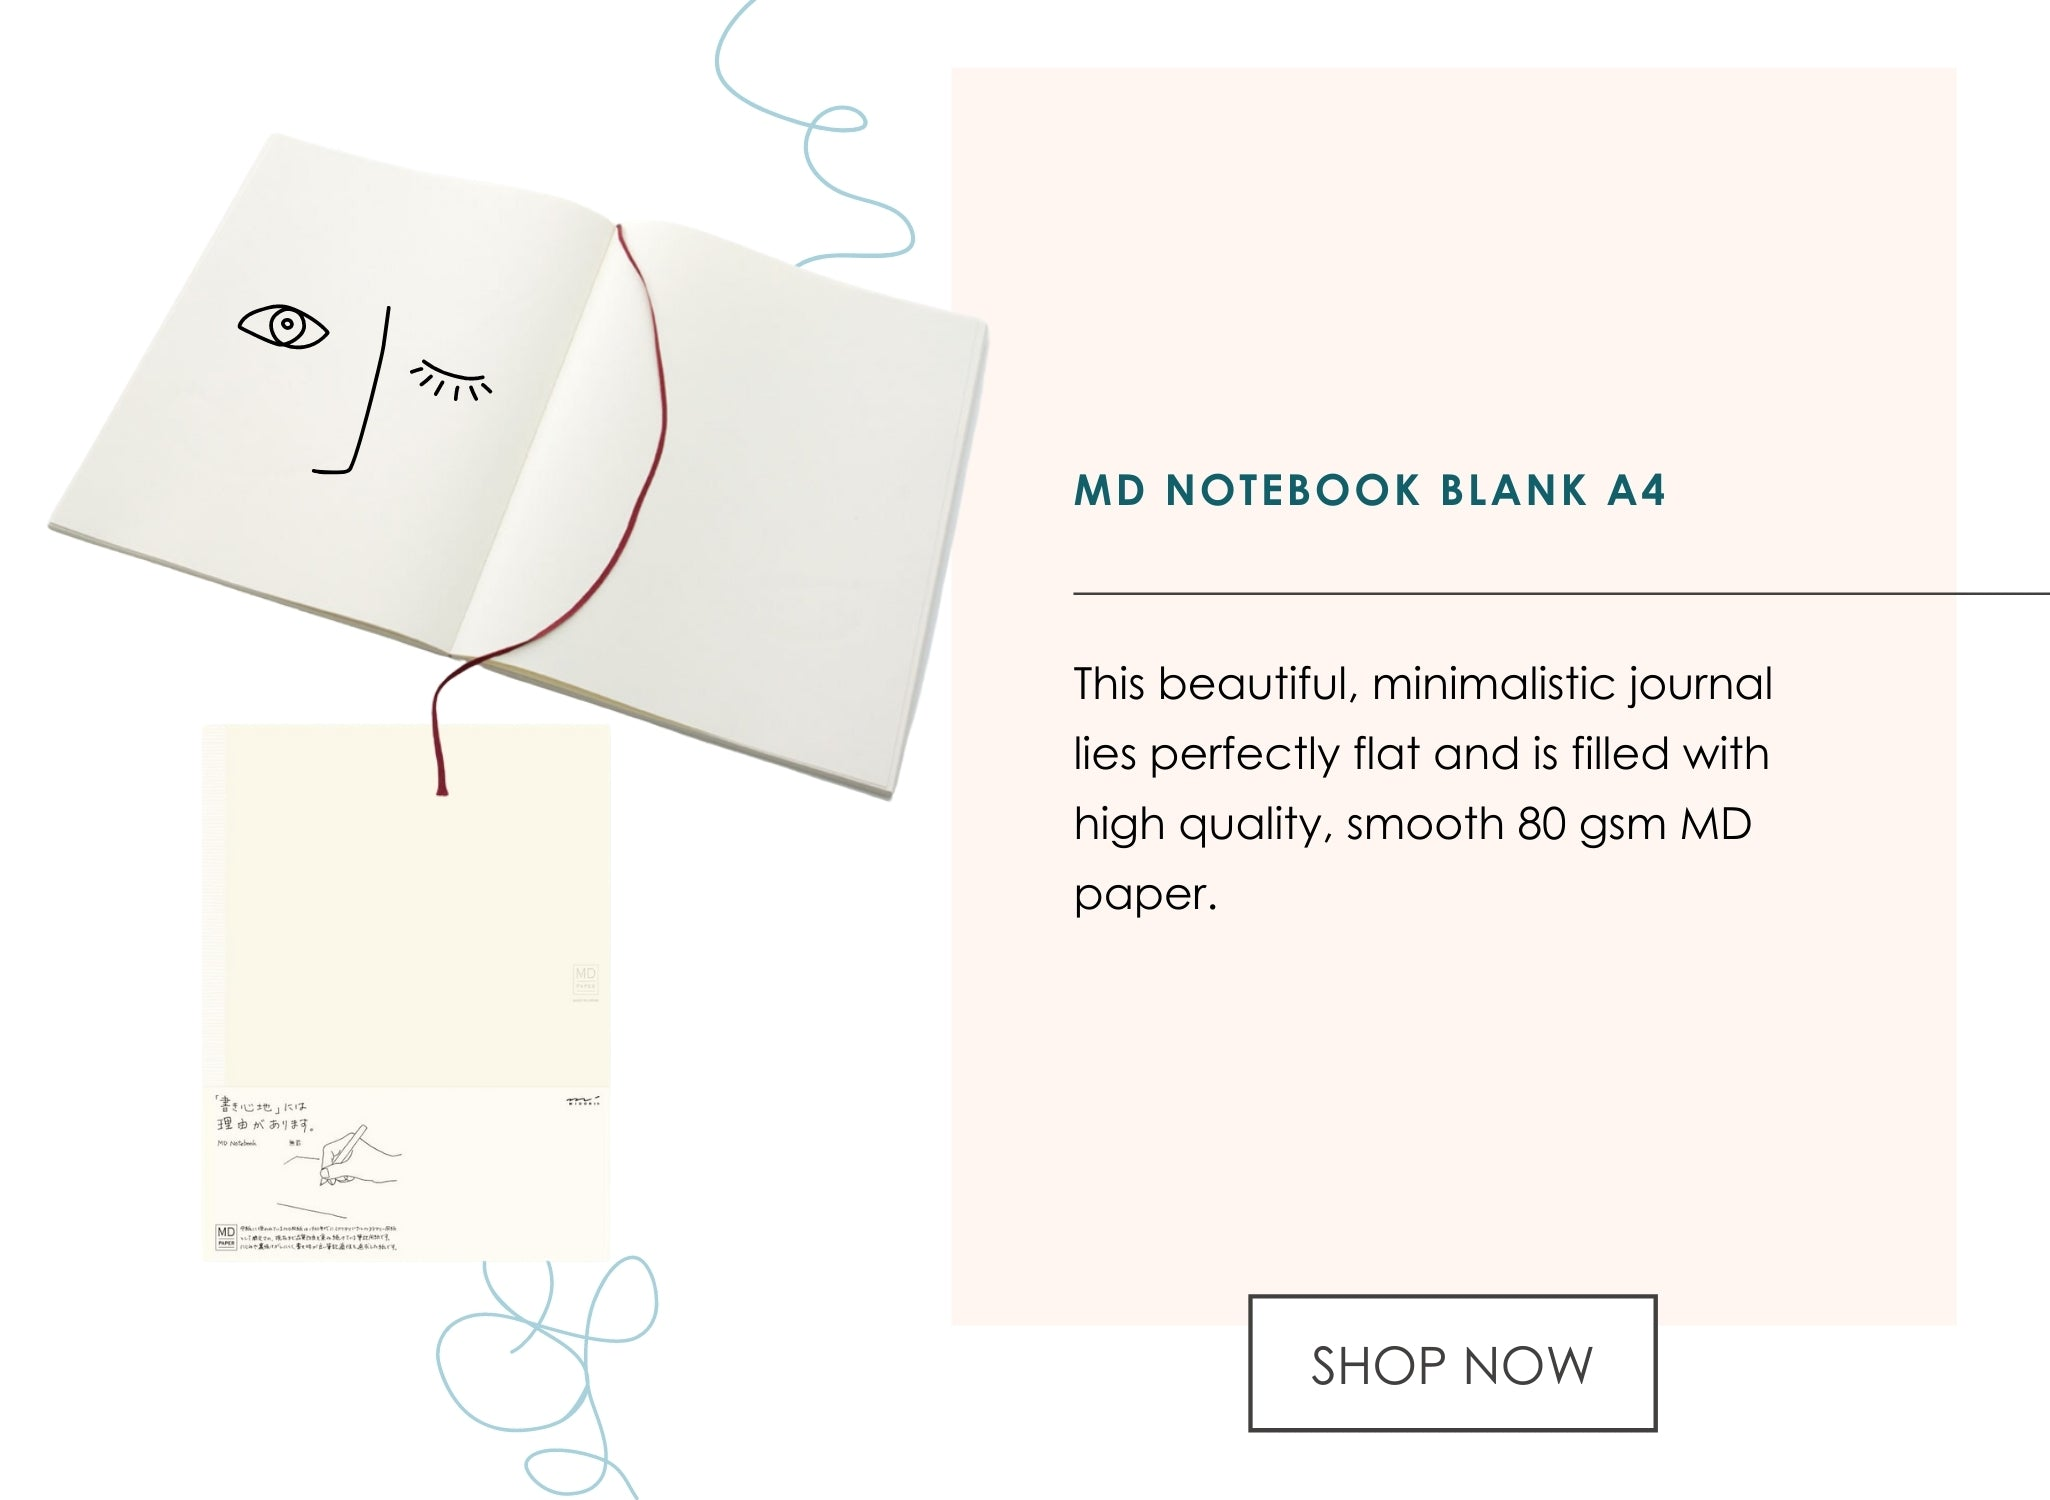 This beautiful, minimalistic journal lies perfectly flat and is filled with high quality, smooth 80 gsm MD paper.